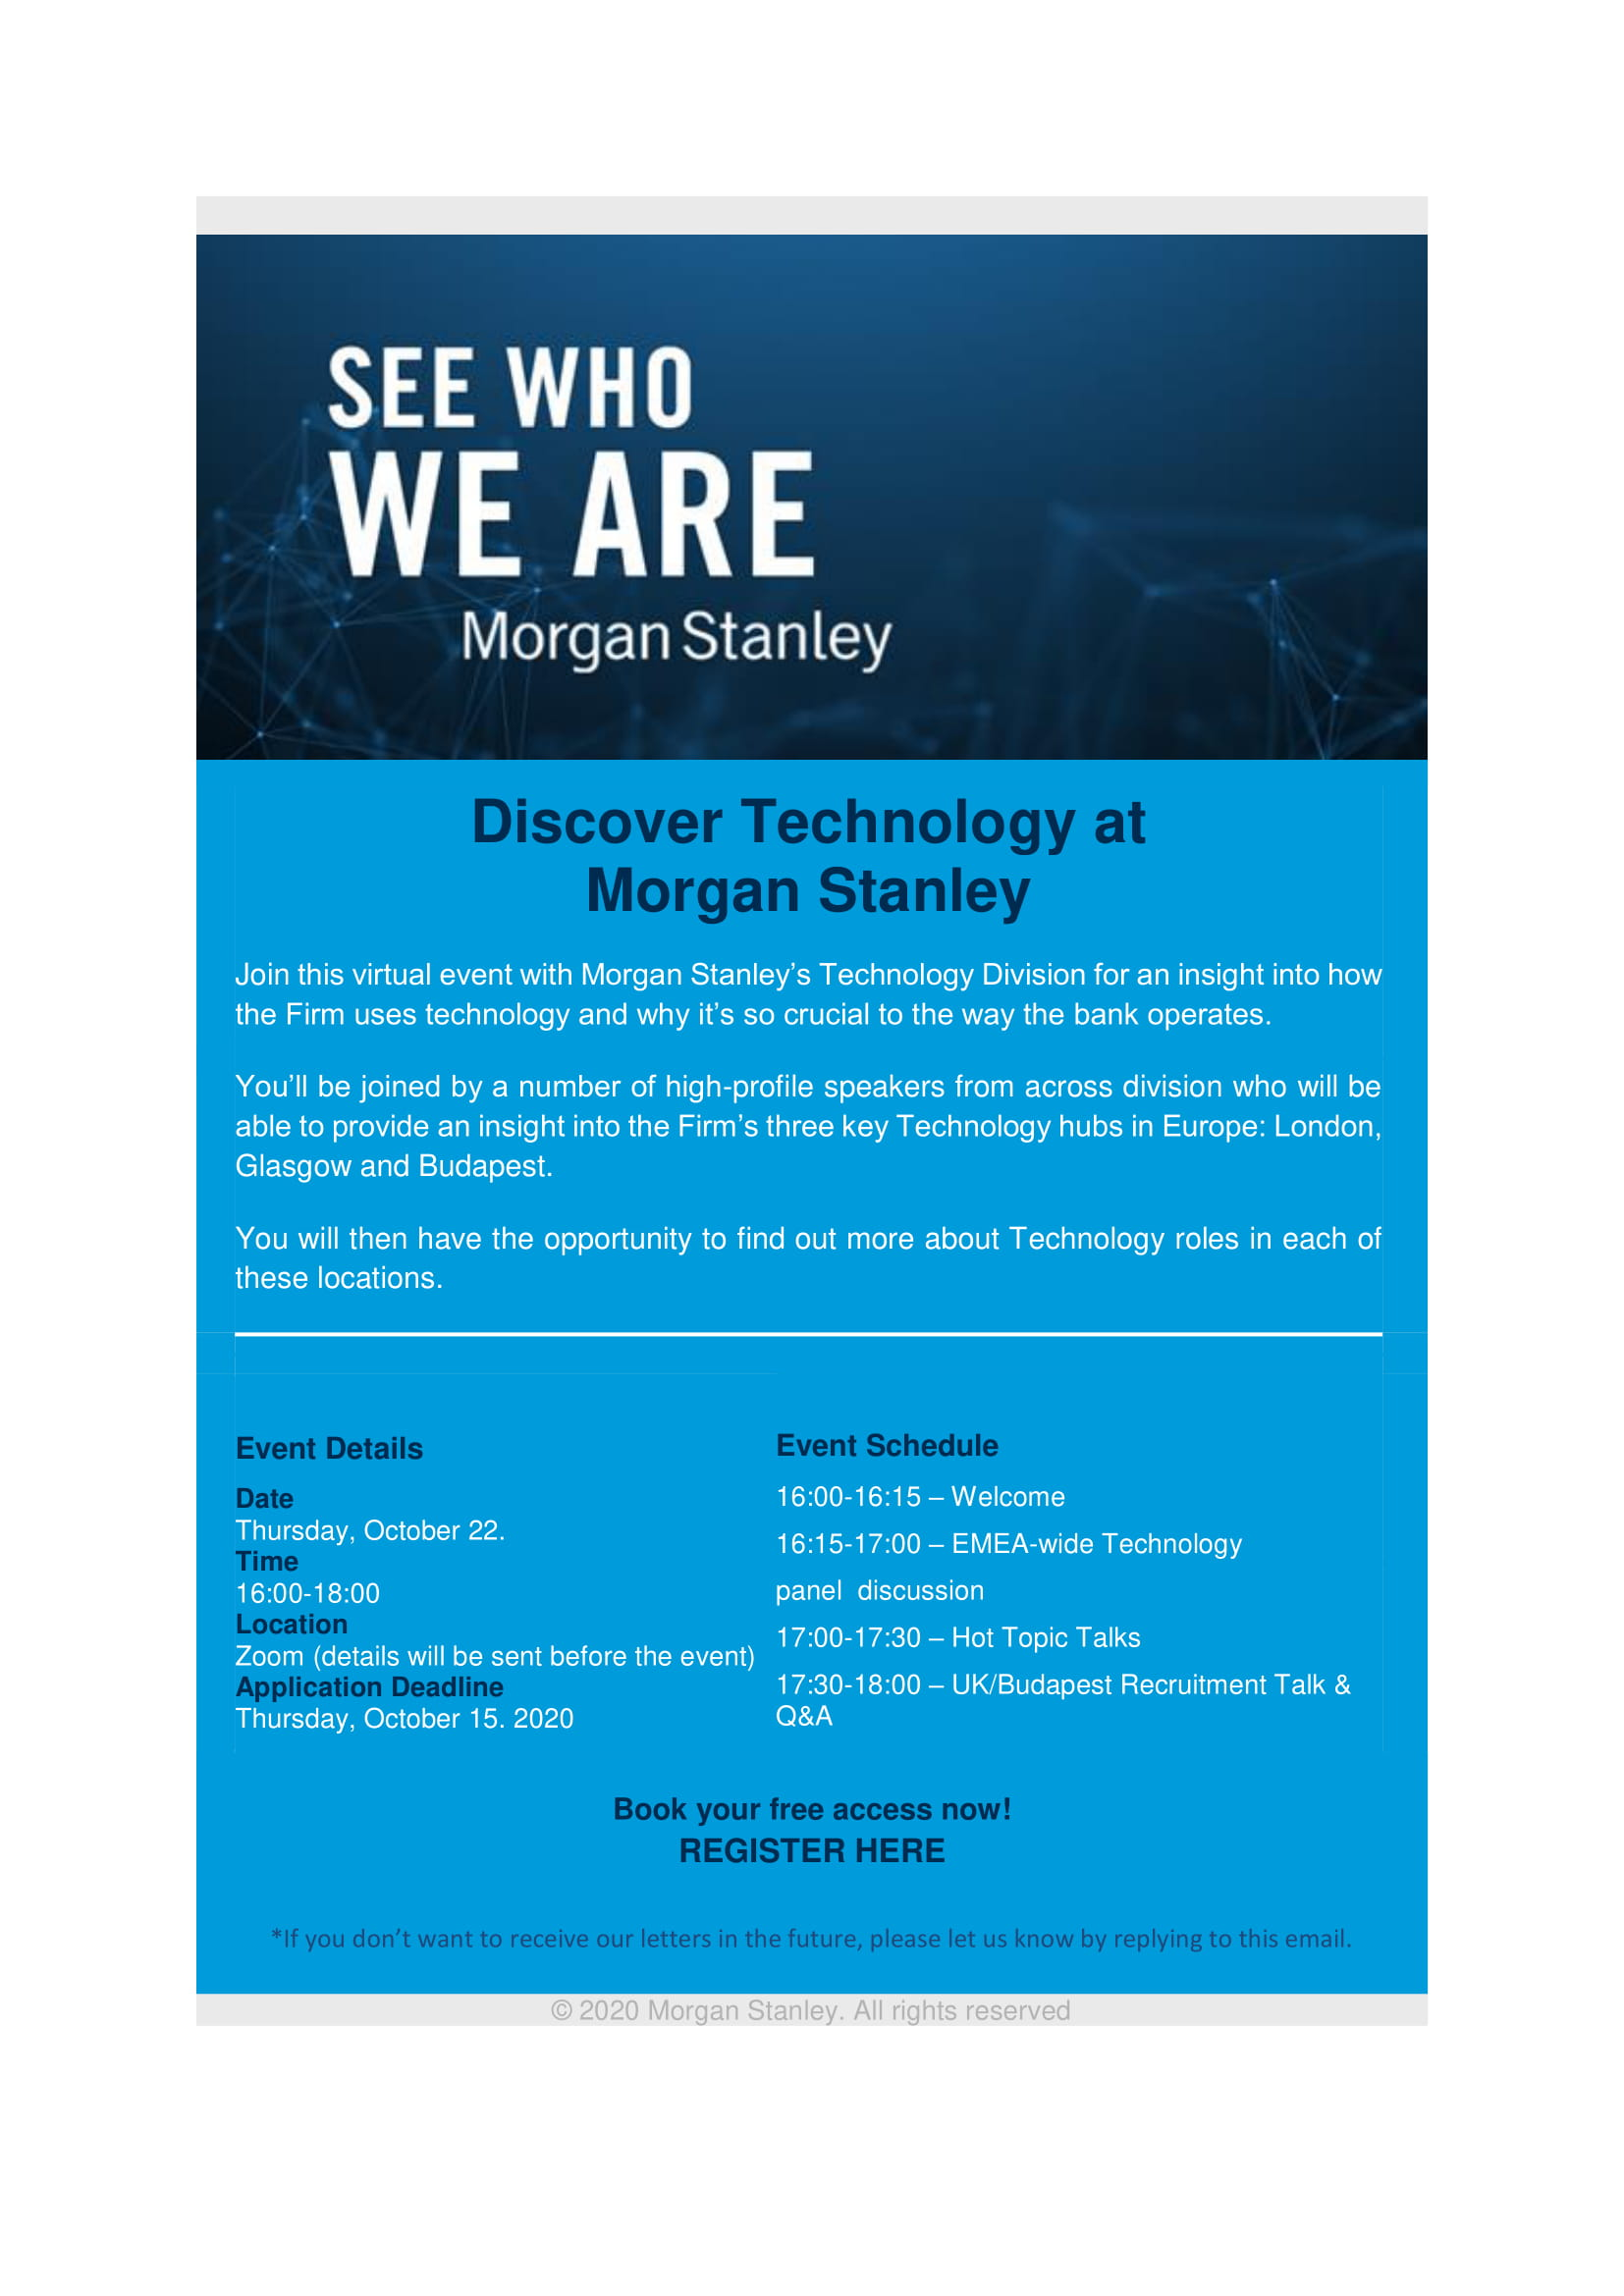 Discover Technology at Morgan Stanley 1